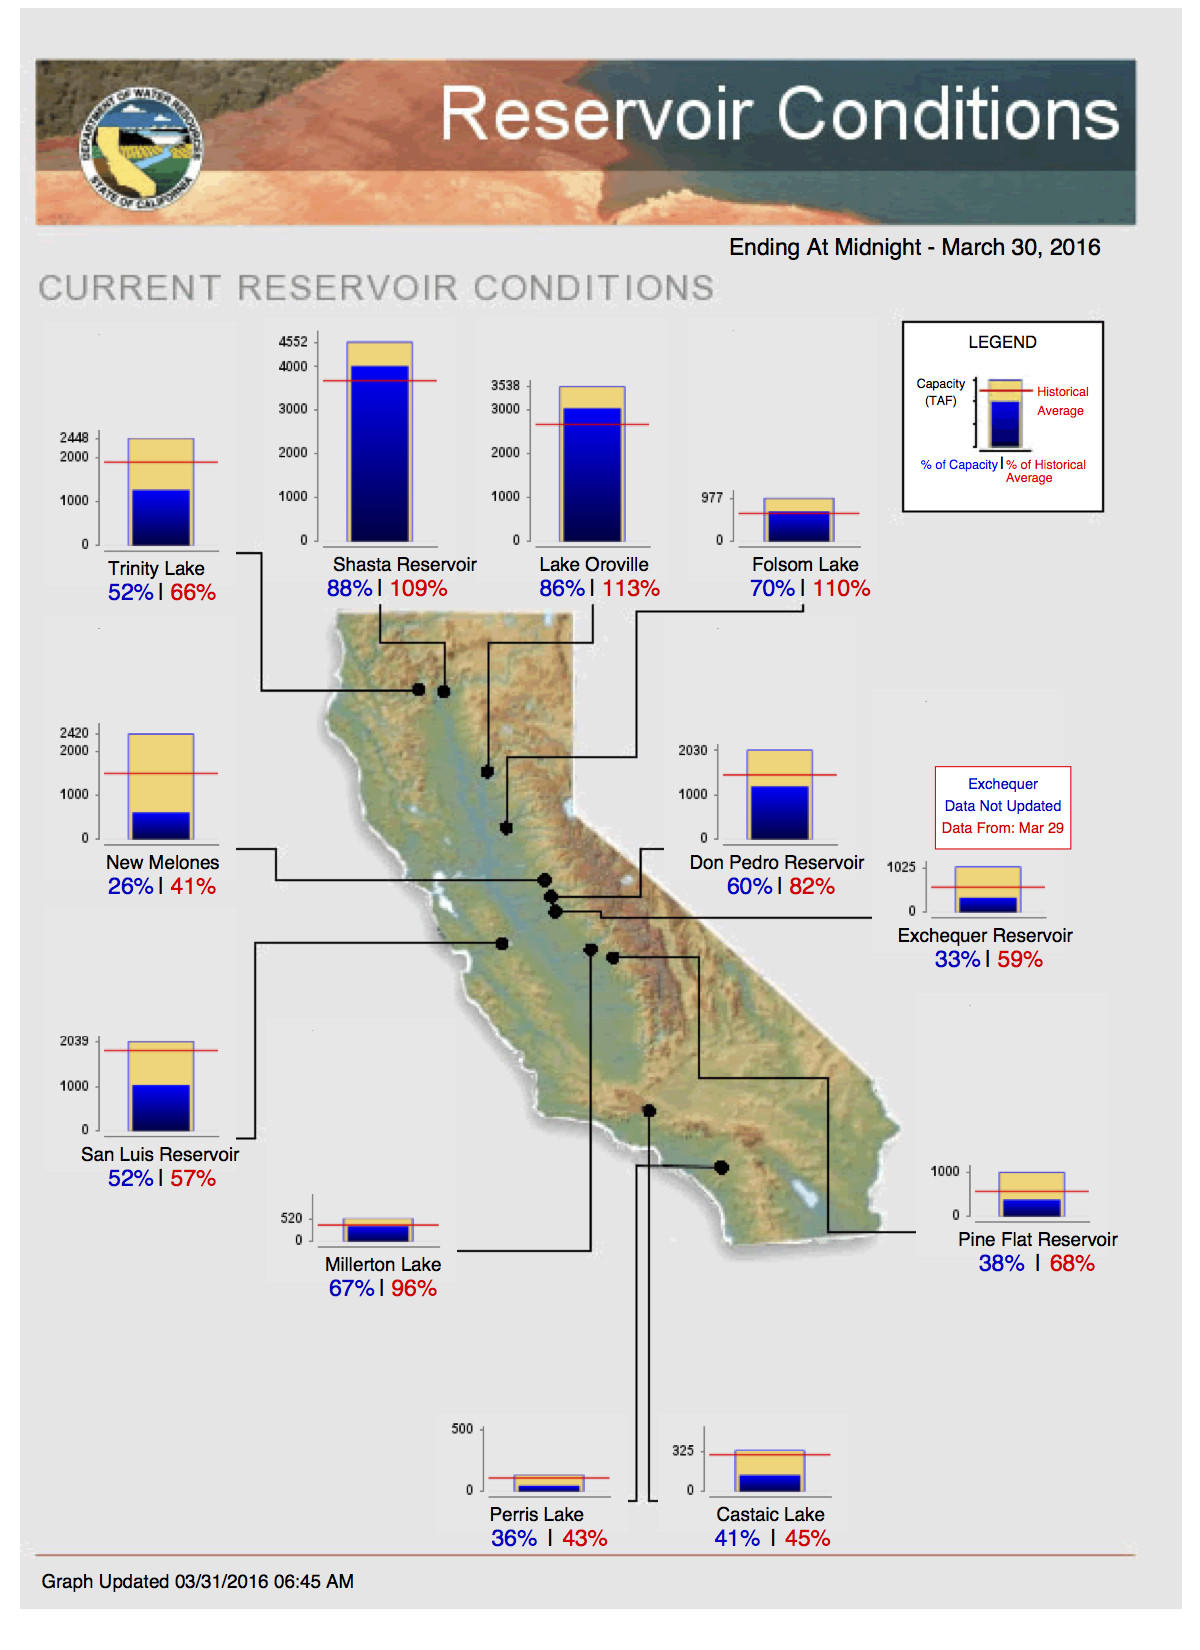 Some Northern California reservoirs have risen above historical levels, but drought effects are still evident in Southern California